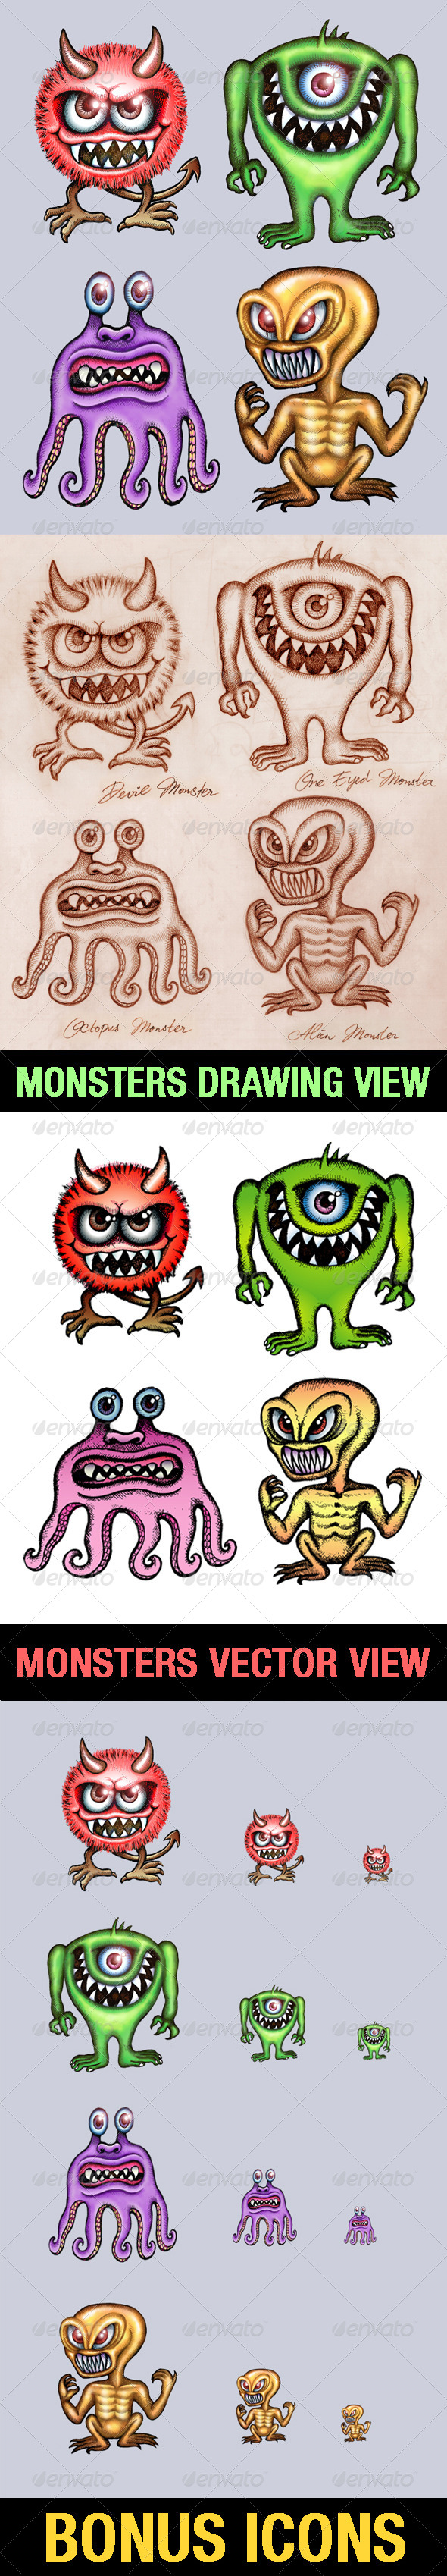 GraphicRiver 4 Monsters Illustration 4205393